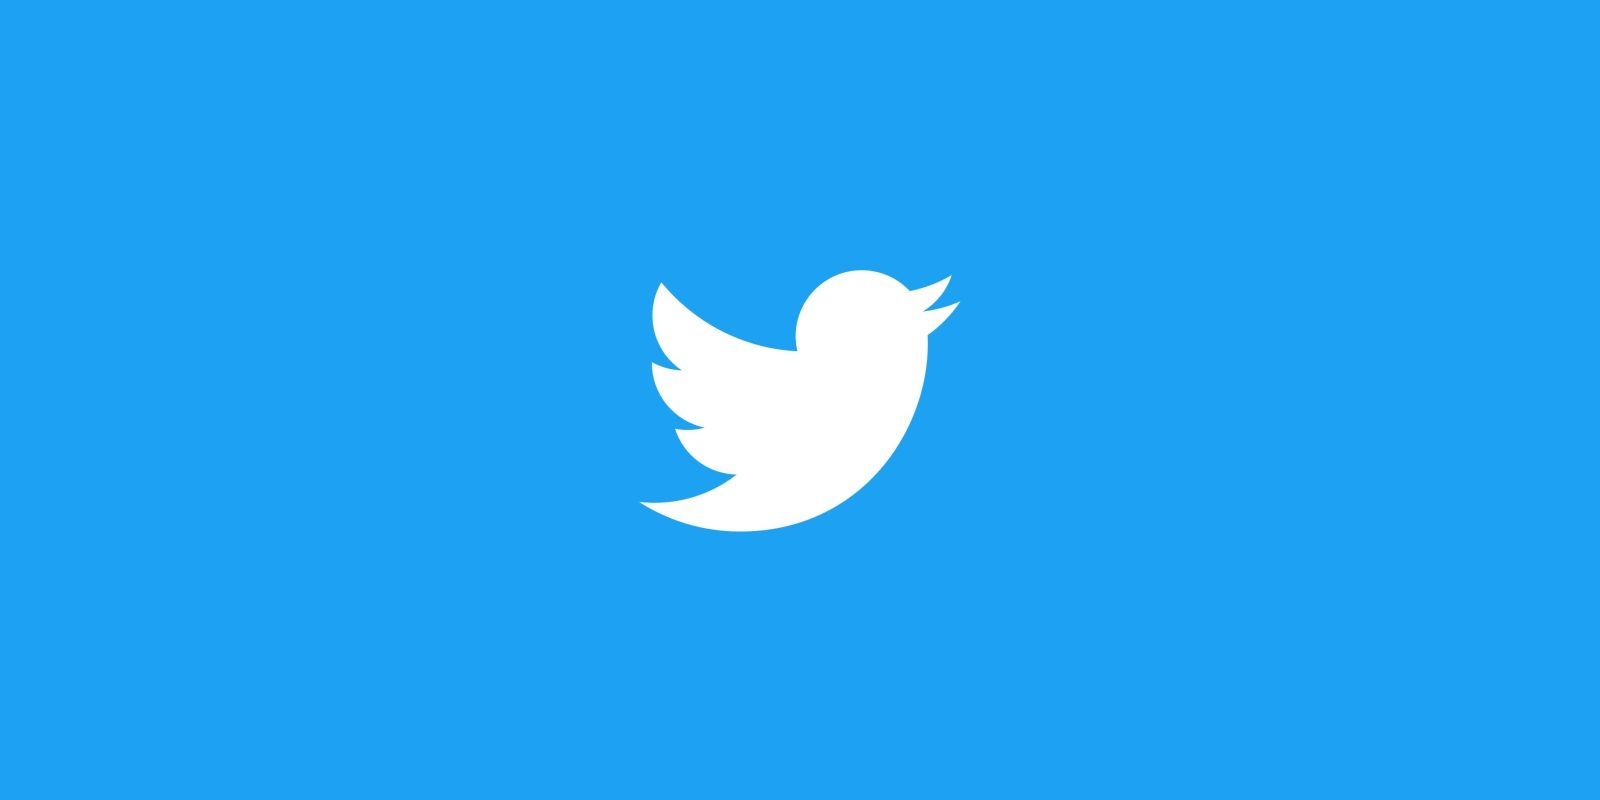 Twitter announces official support for tweetstorms with new 'Threads' feature